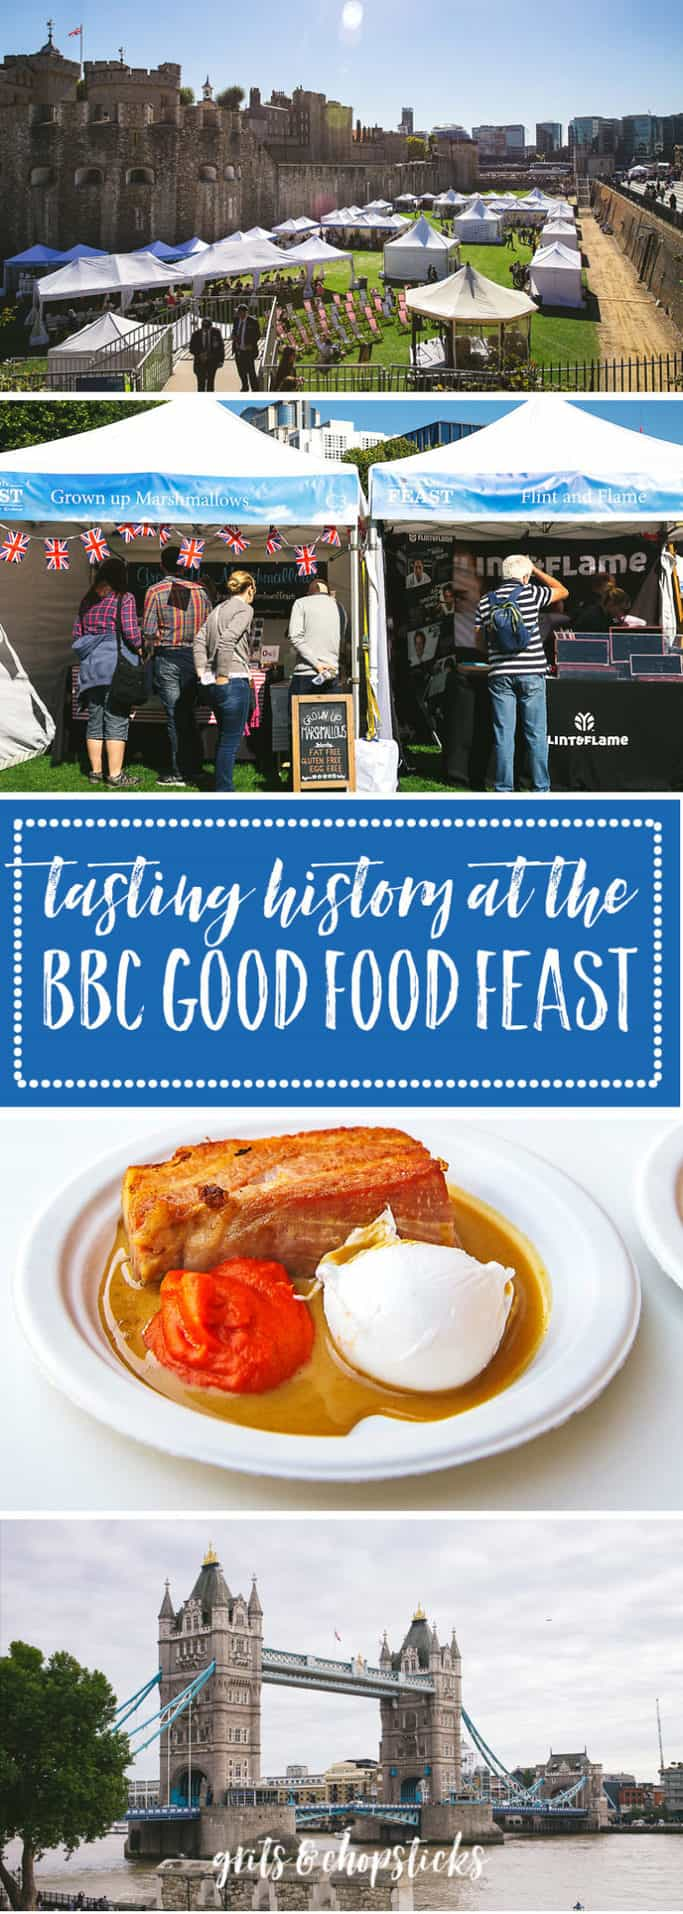 Tasting history at the BBC Good Food Feast in and around various locations in London means that you can see British history up close while eating delicious food and seeing famous British chefs in their demo kitchen! Click here for more information